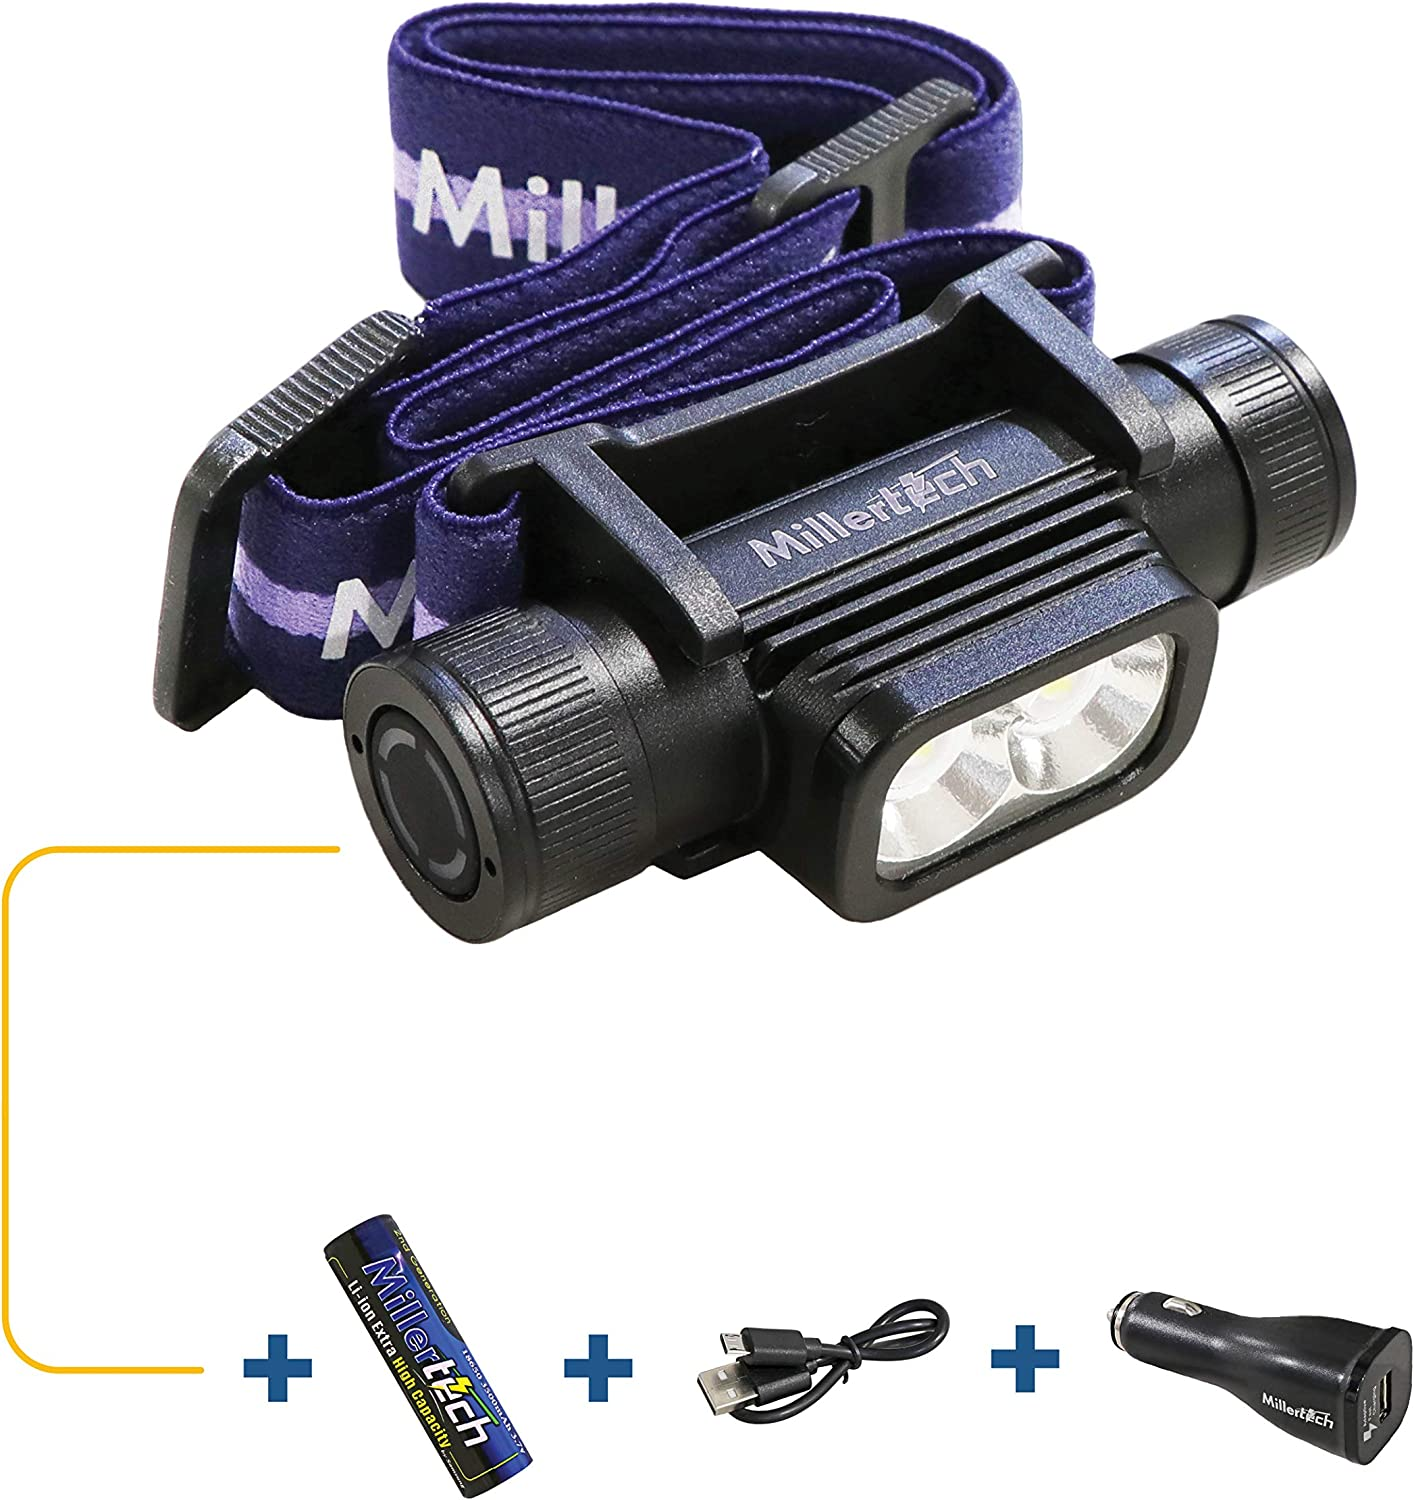 MillerTech Now on sale #555 - Double Power Headlamp Recommended LED CREE 18 Rechargeable